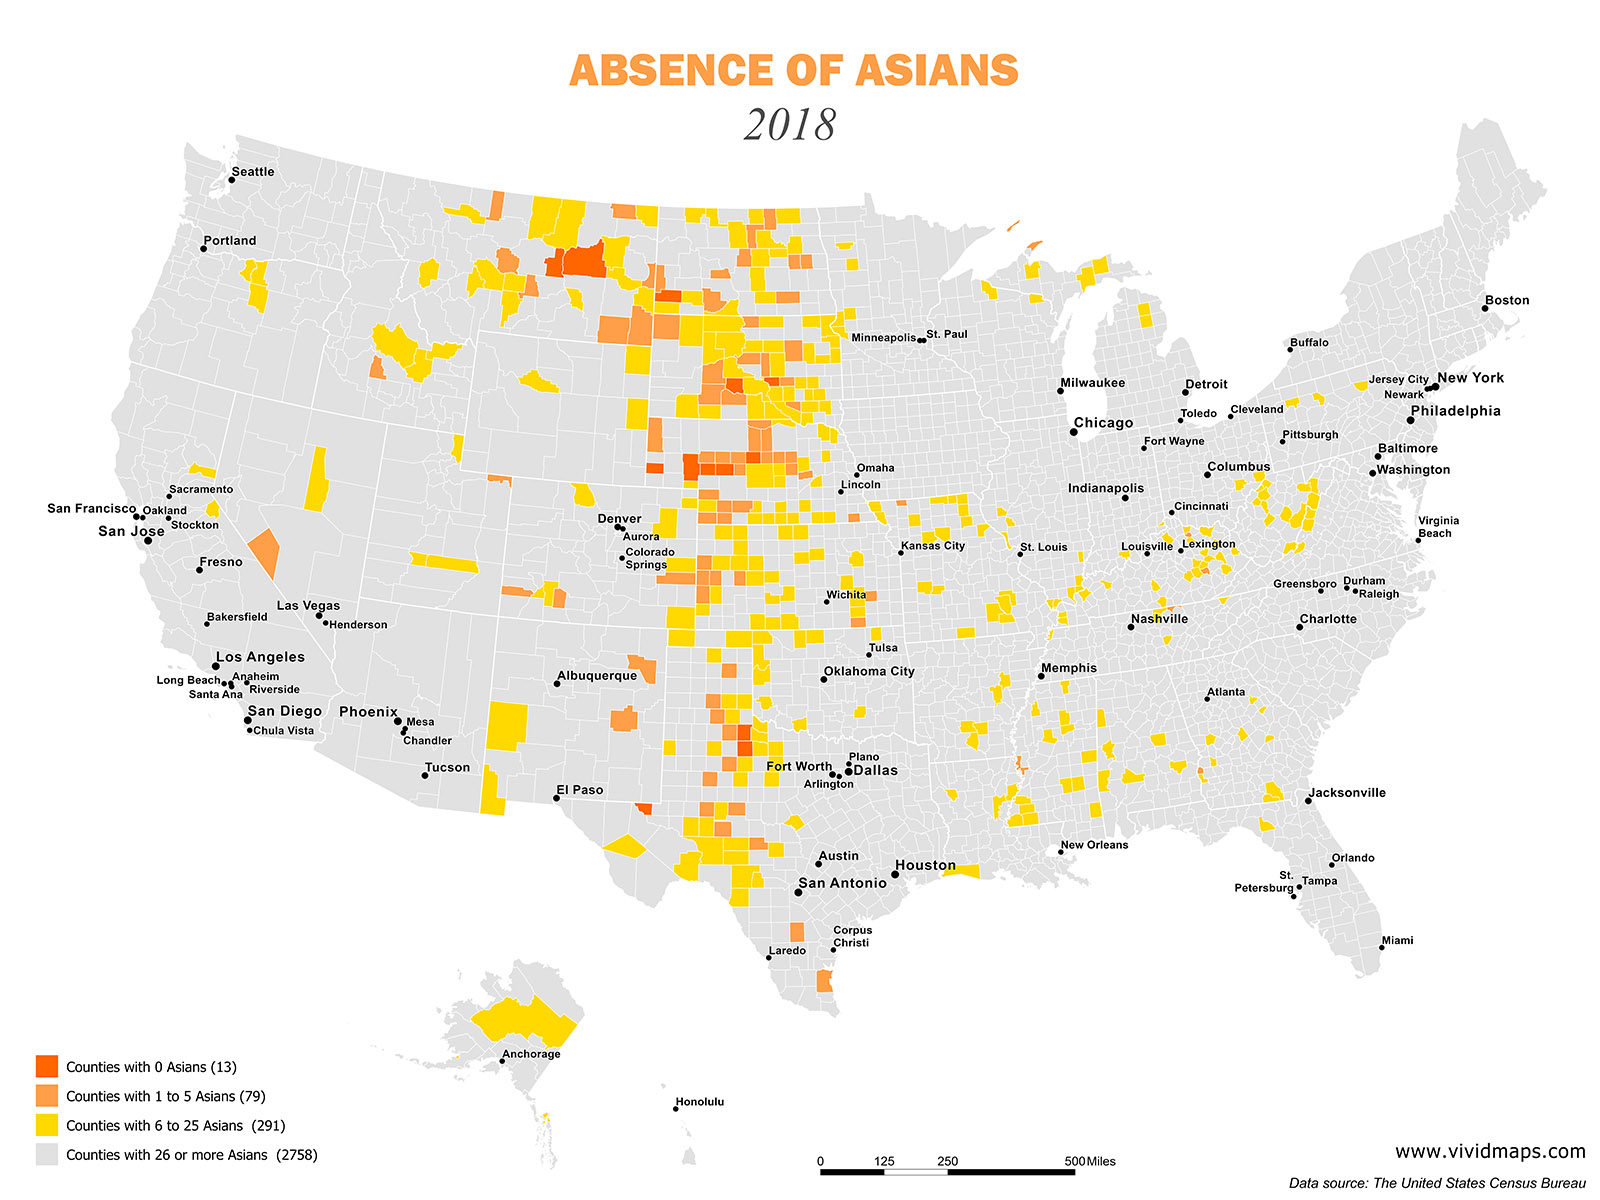 Map of absence of Asians